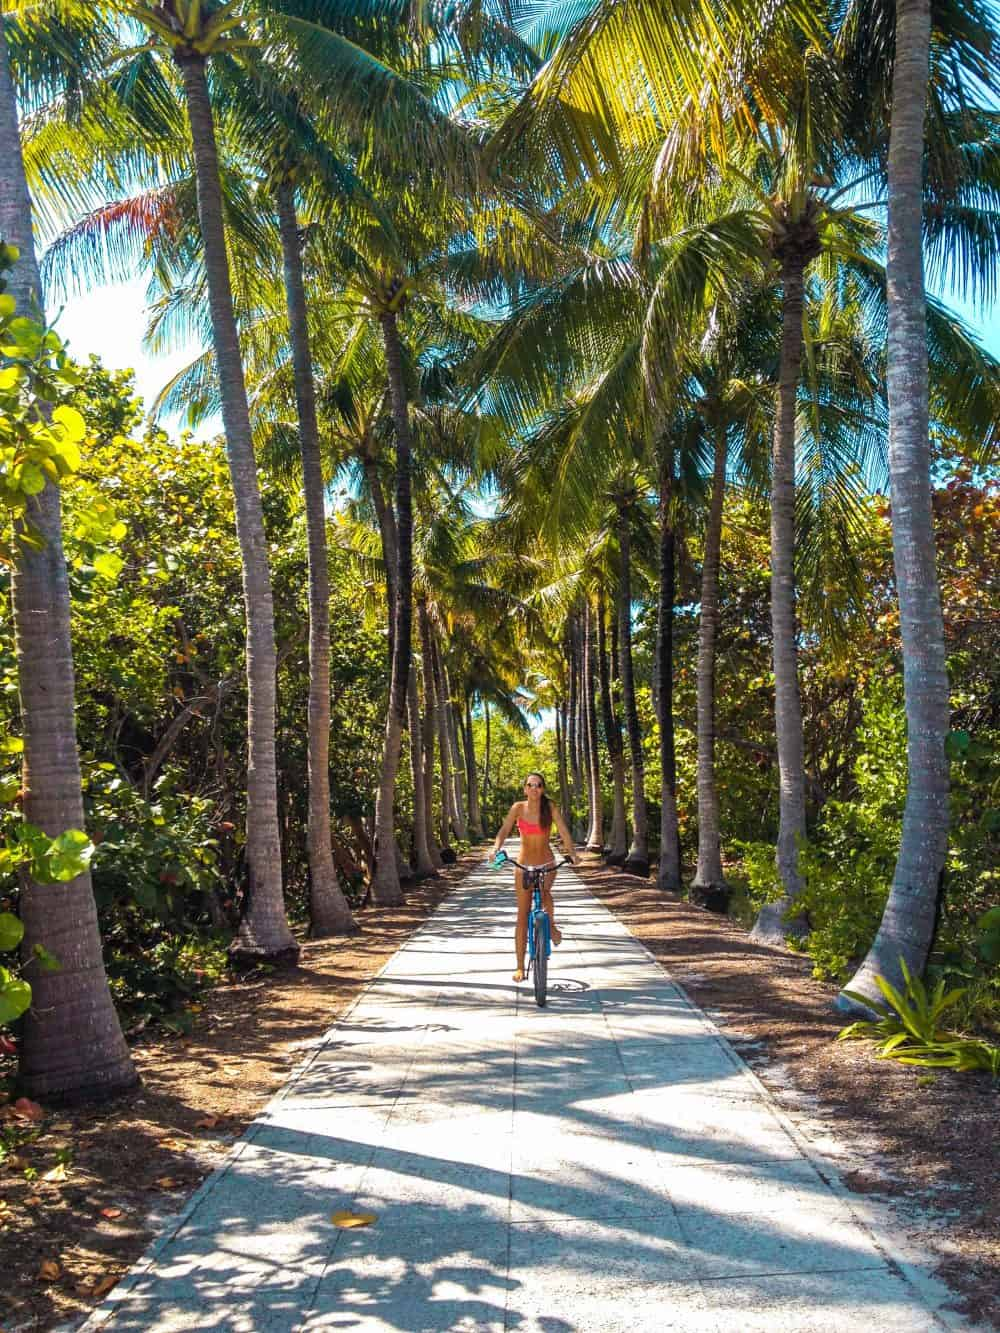 Cycling in Key Biscayne